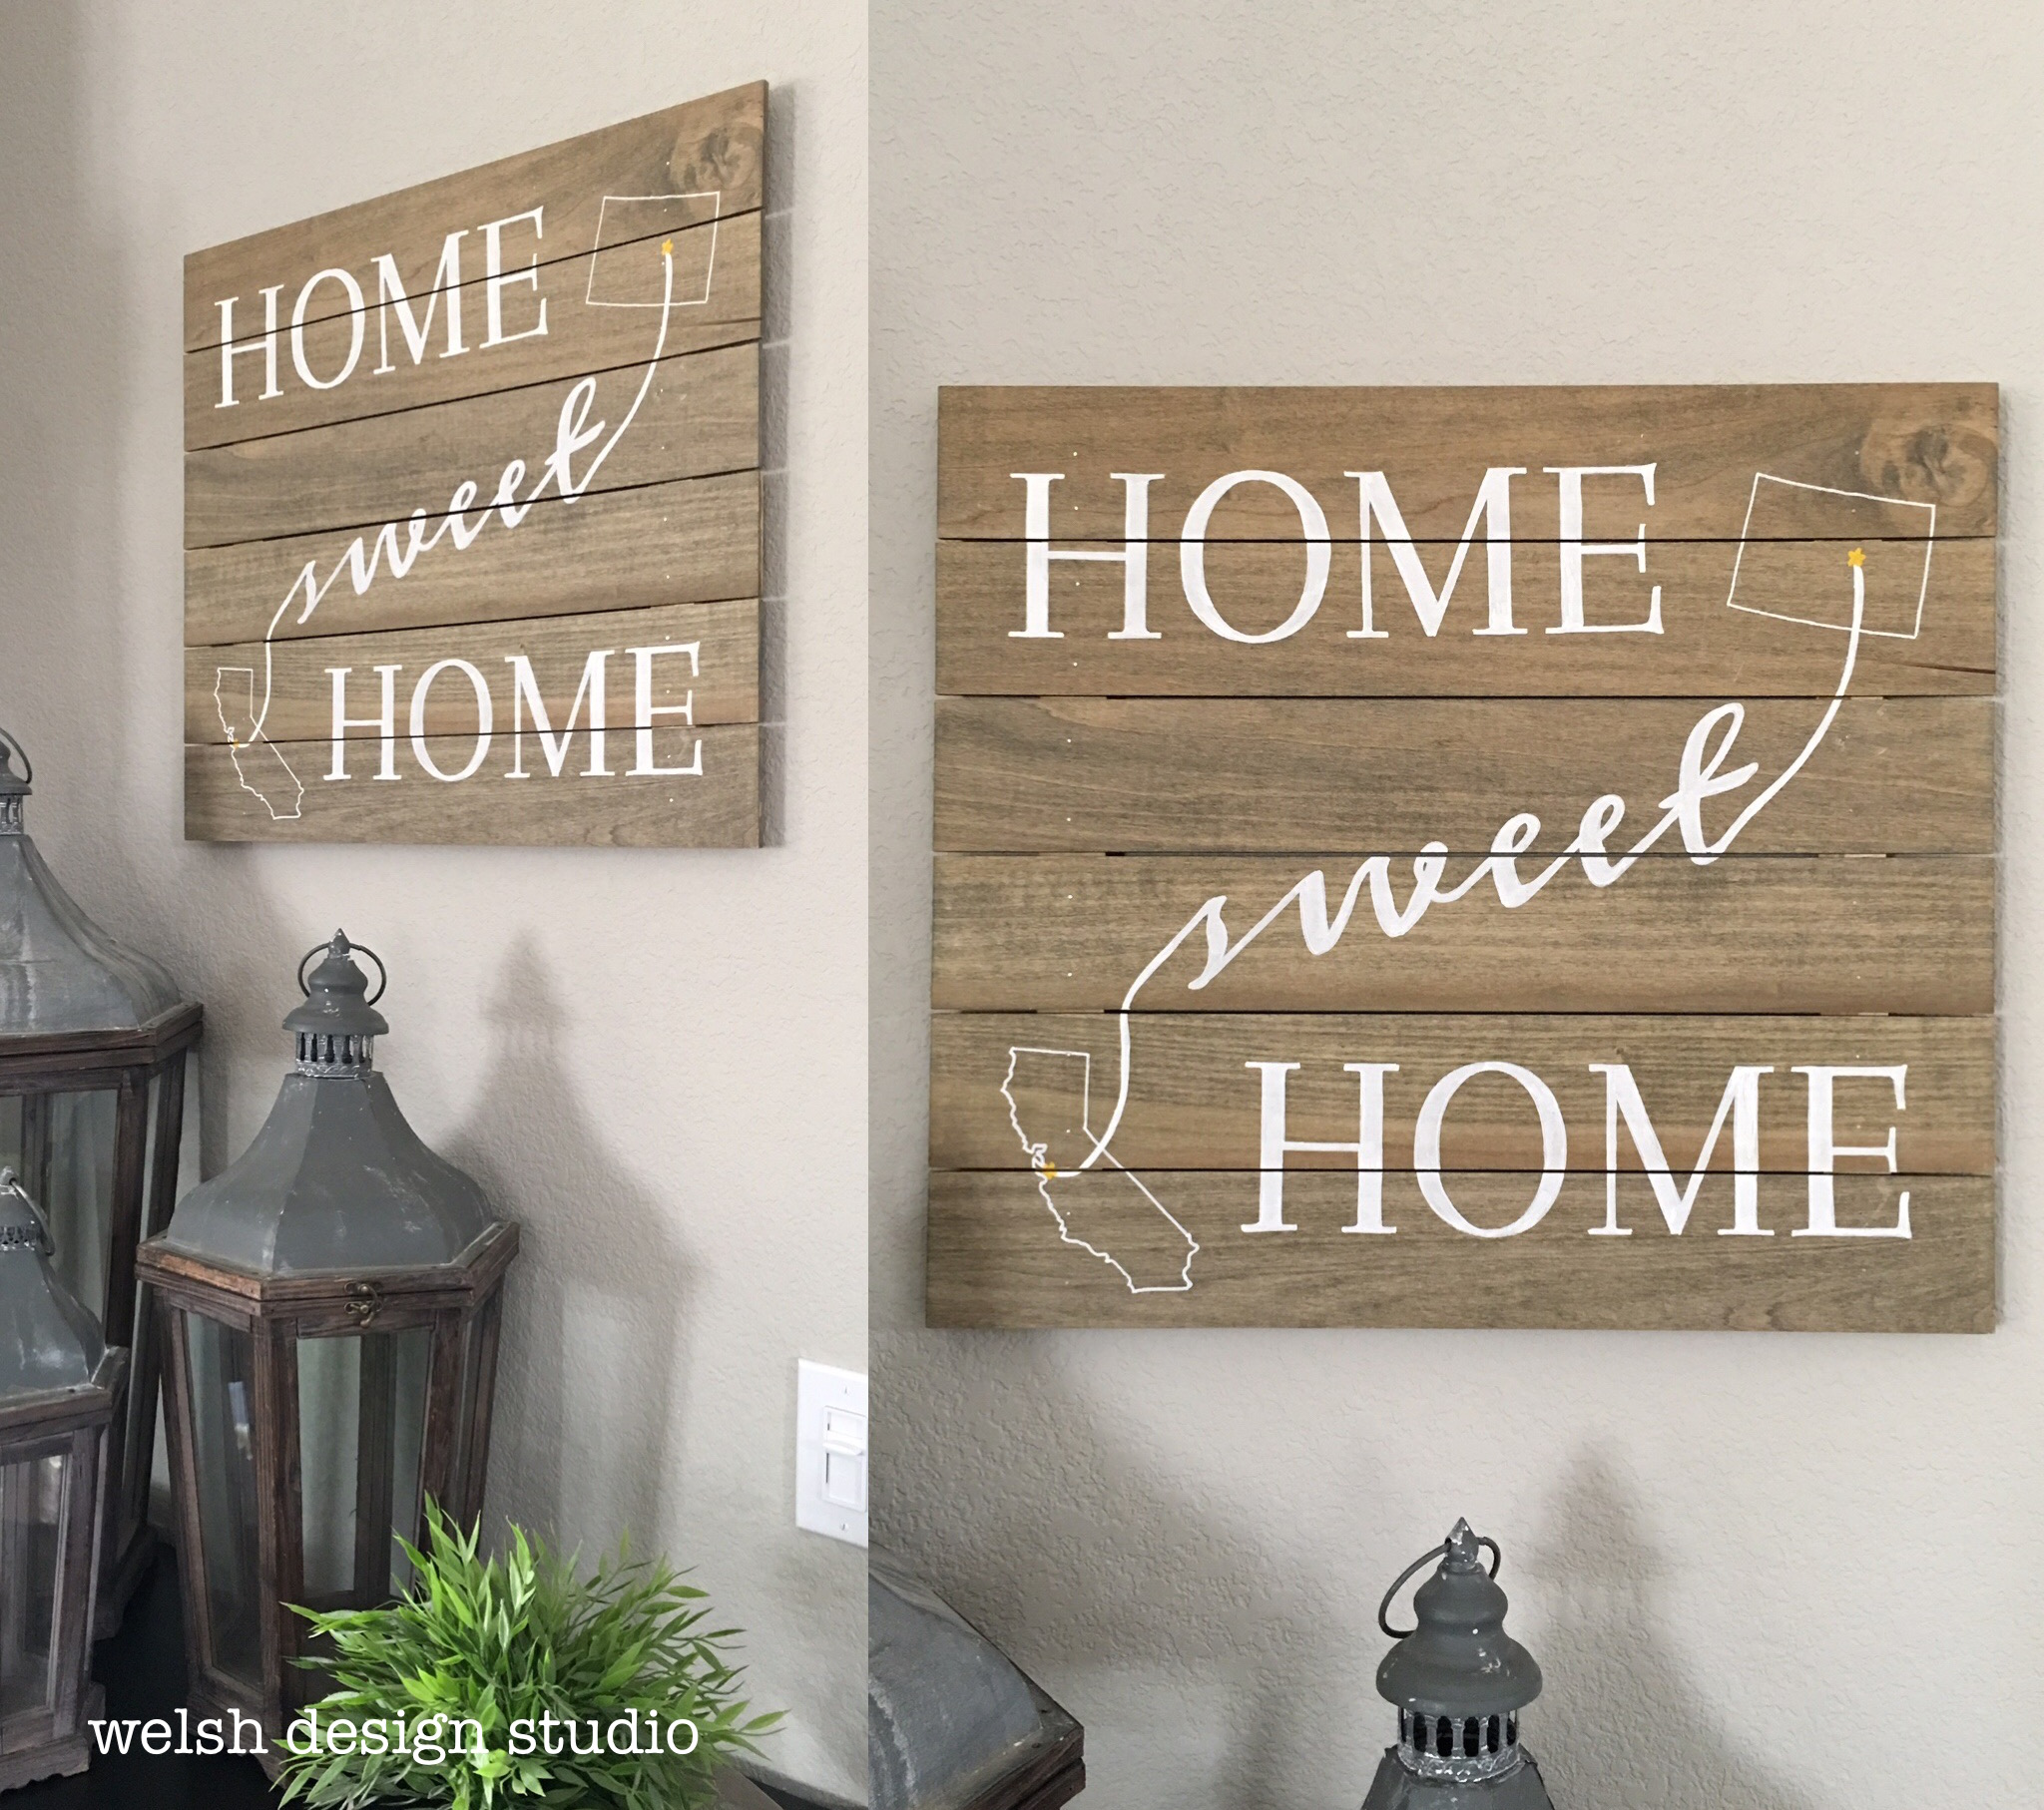 How To Make A Wood Plank Sign For Your Home Welsh Design Studio